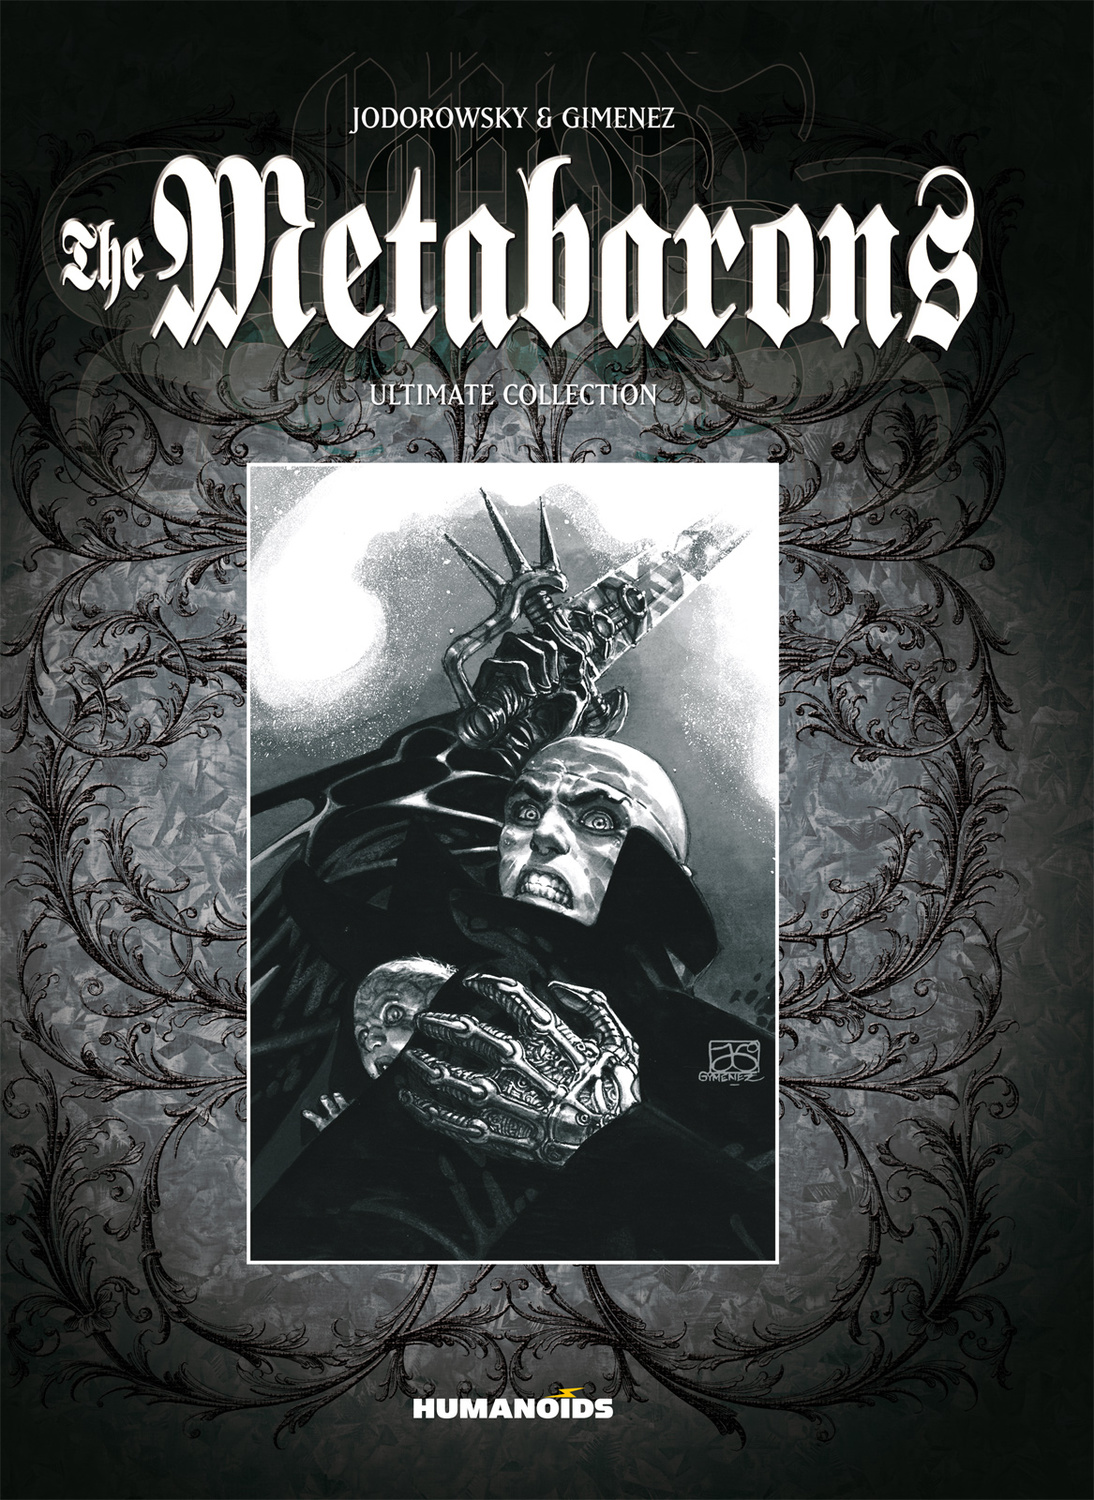 The Metabarons - Oversized Deluxe Edition : Ultimate Collection